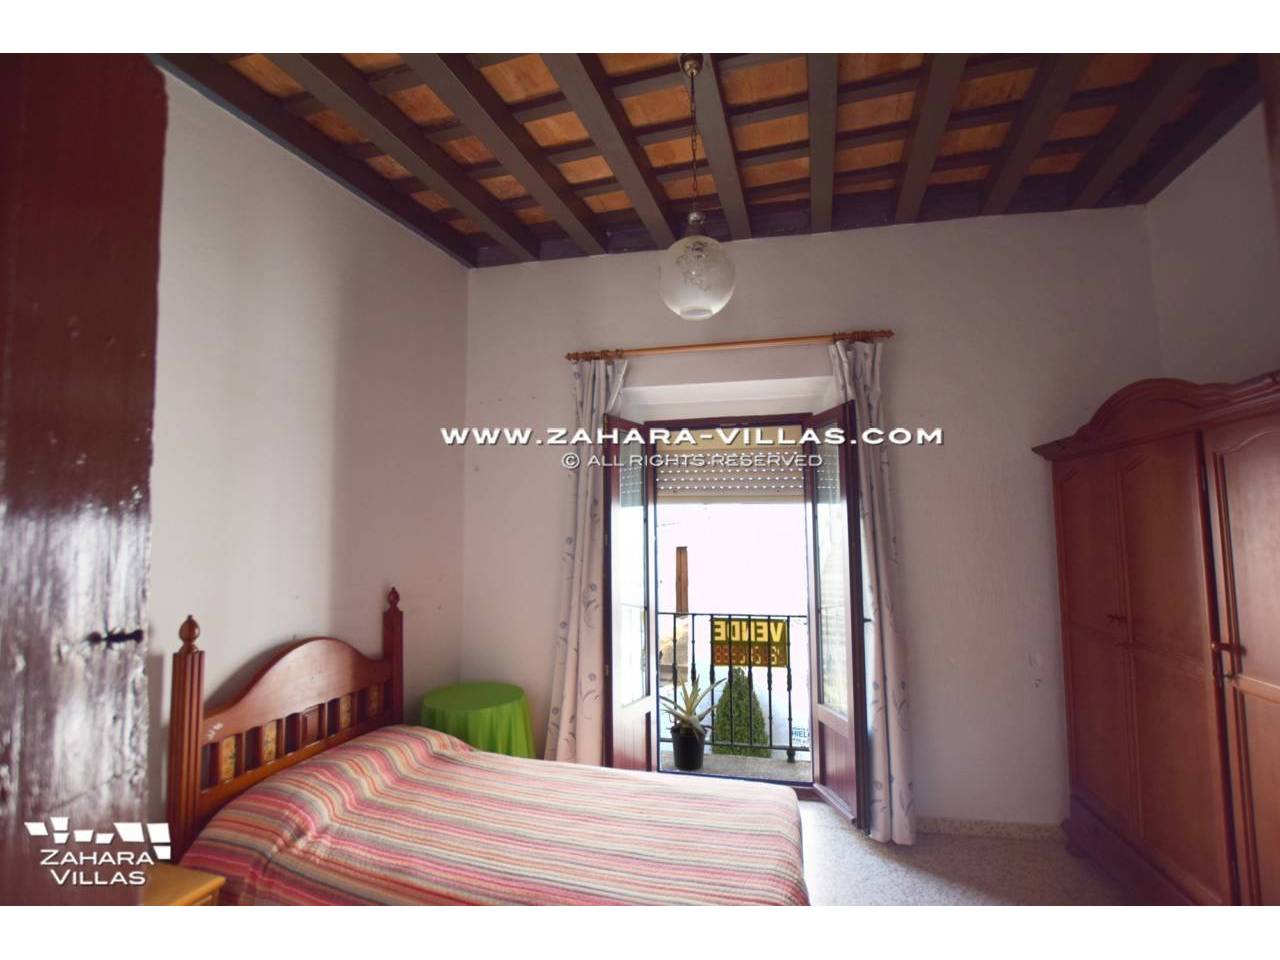 Imagen 8 de House for sale located in pedestrian street of Vejer de la Frontera